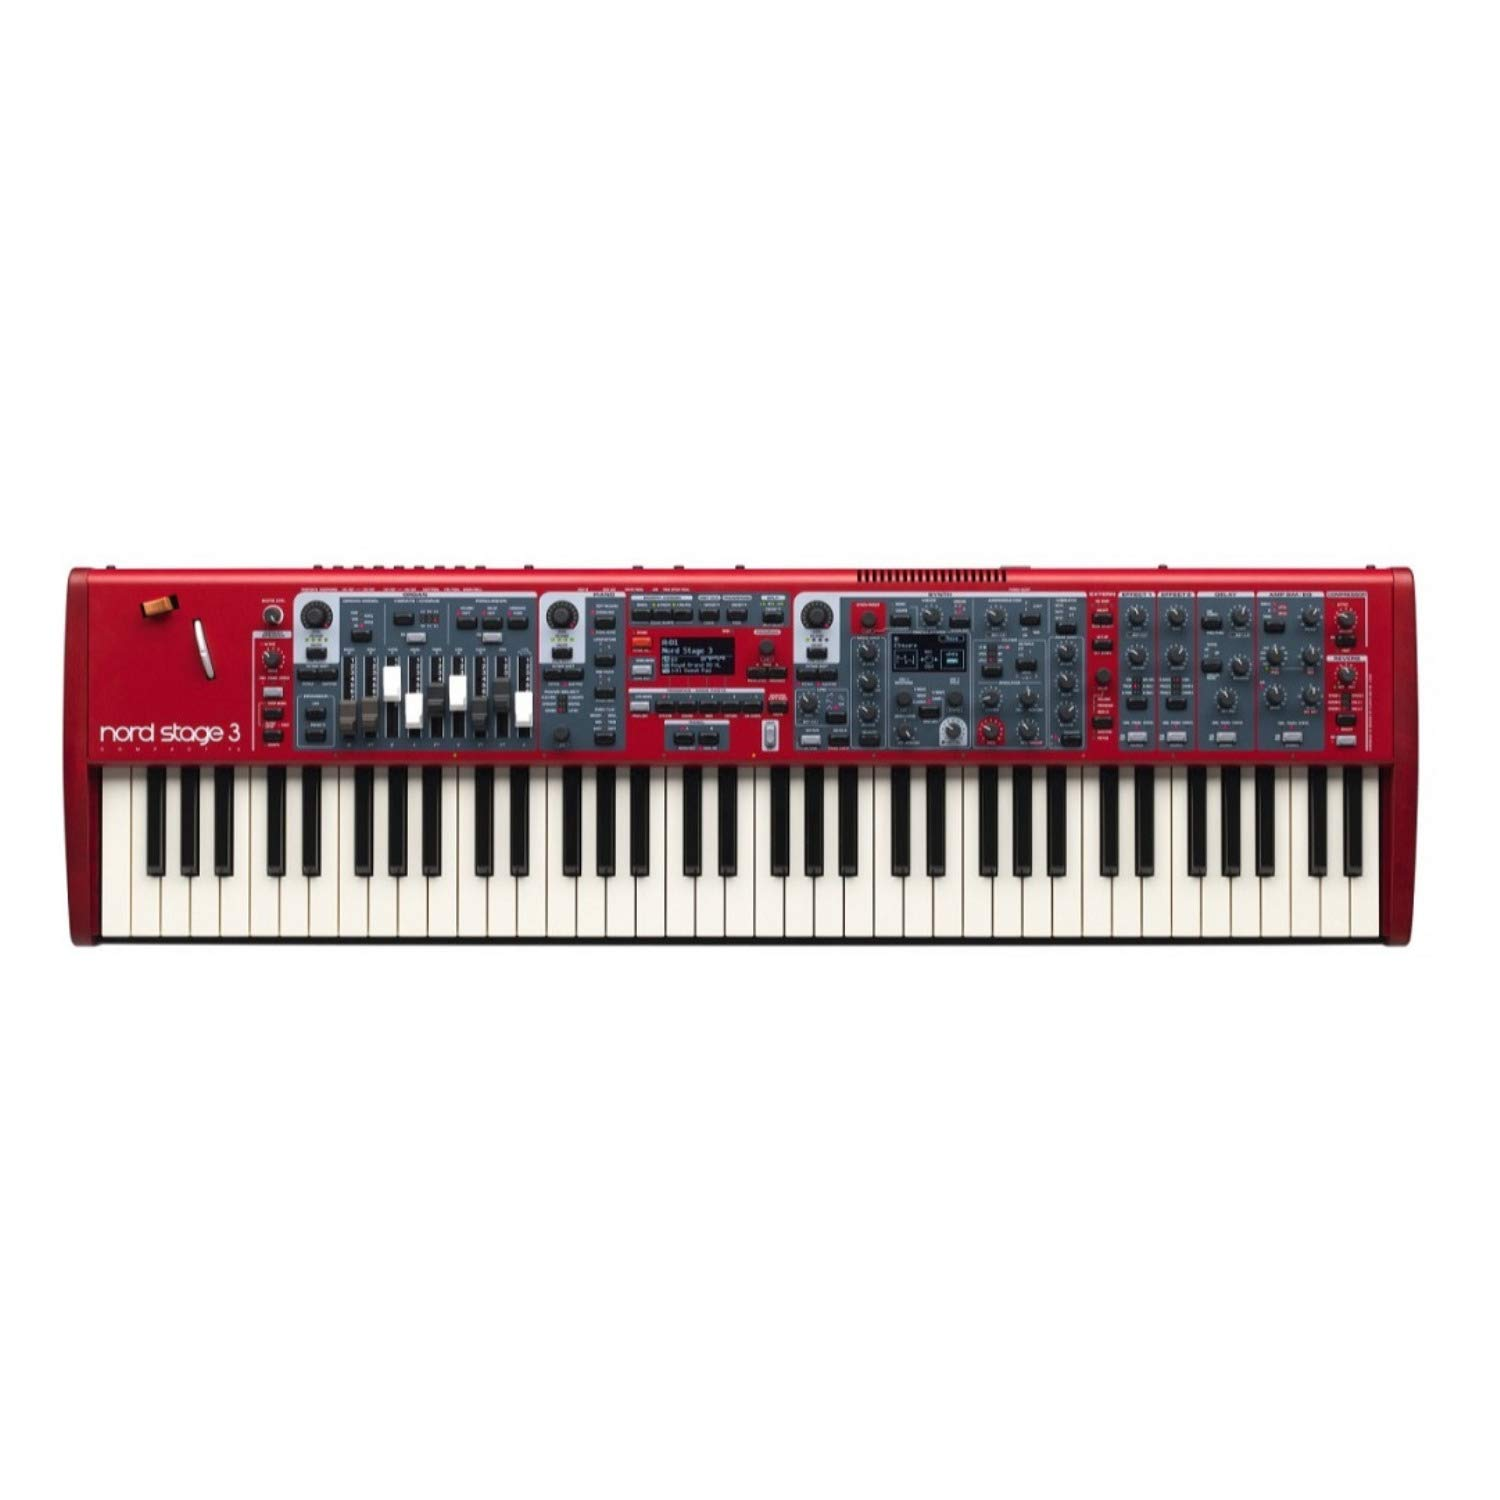 Nord USA Nord 3 Compact 73-Key Digital Stage Piano with Semi-Weighted Keybed (AMS-NSTAGE3-COMPACT) by Nord